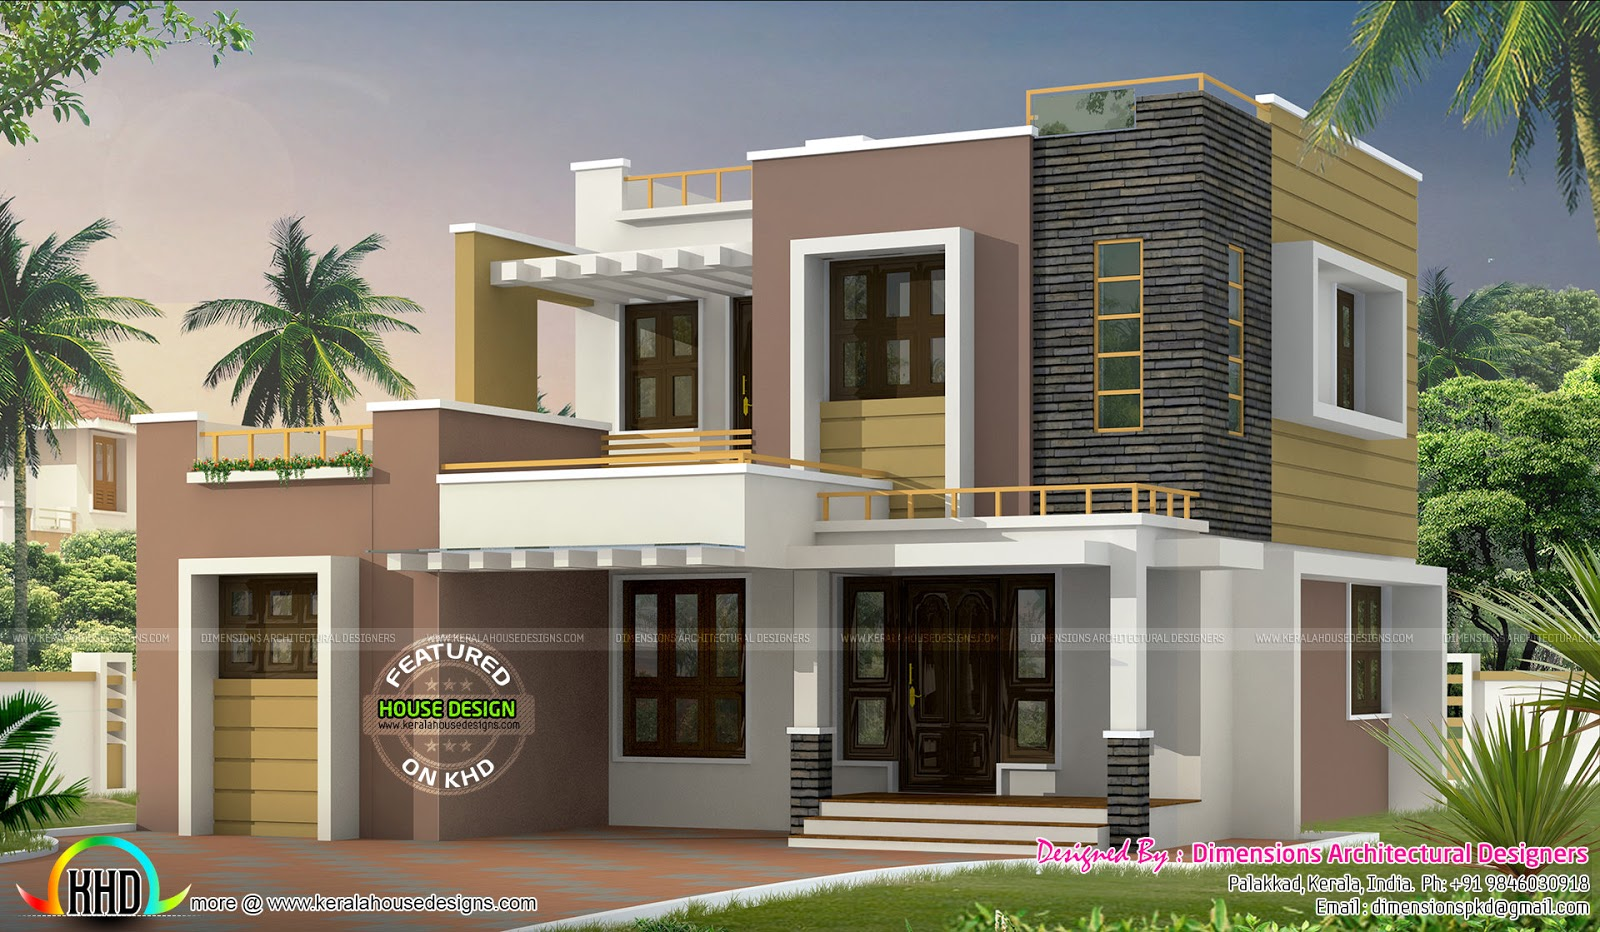 Kerala model house plans 1500 sq ft joy studio design for 1500 sq ft house plans kerala